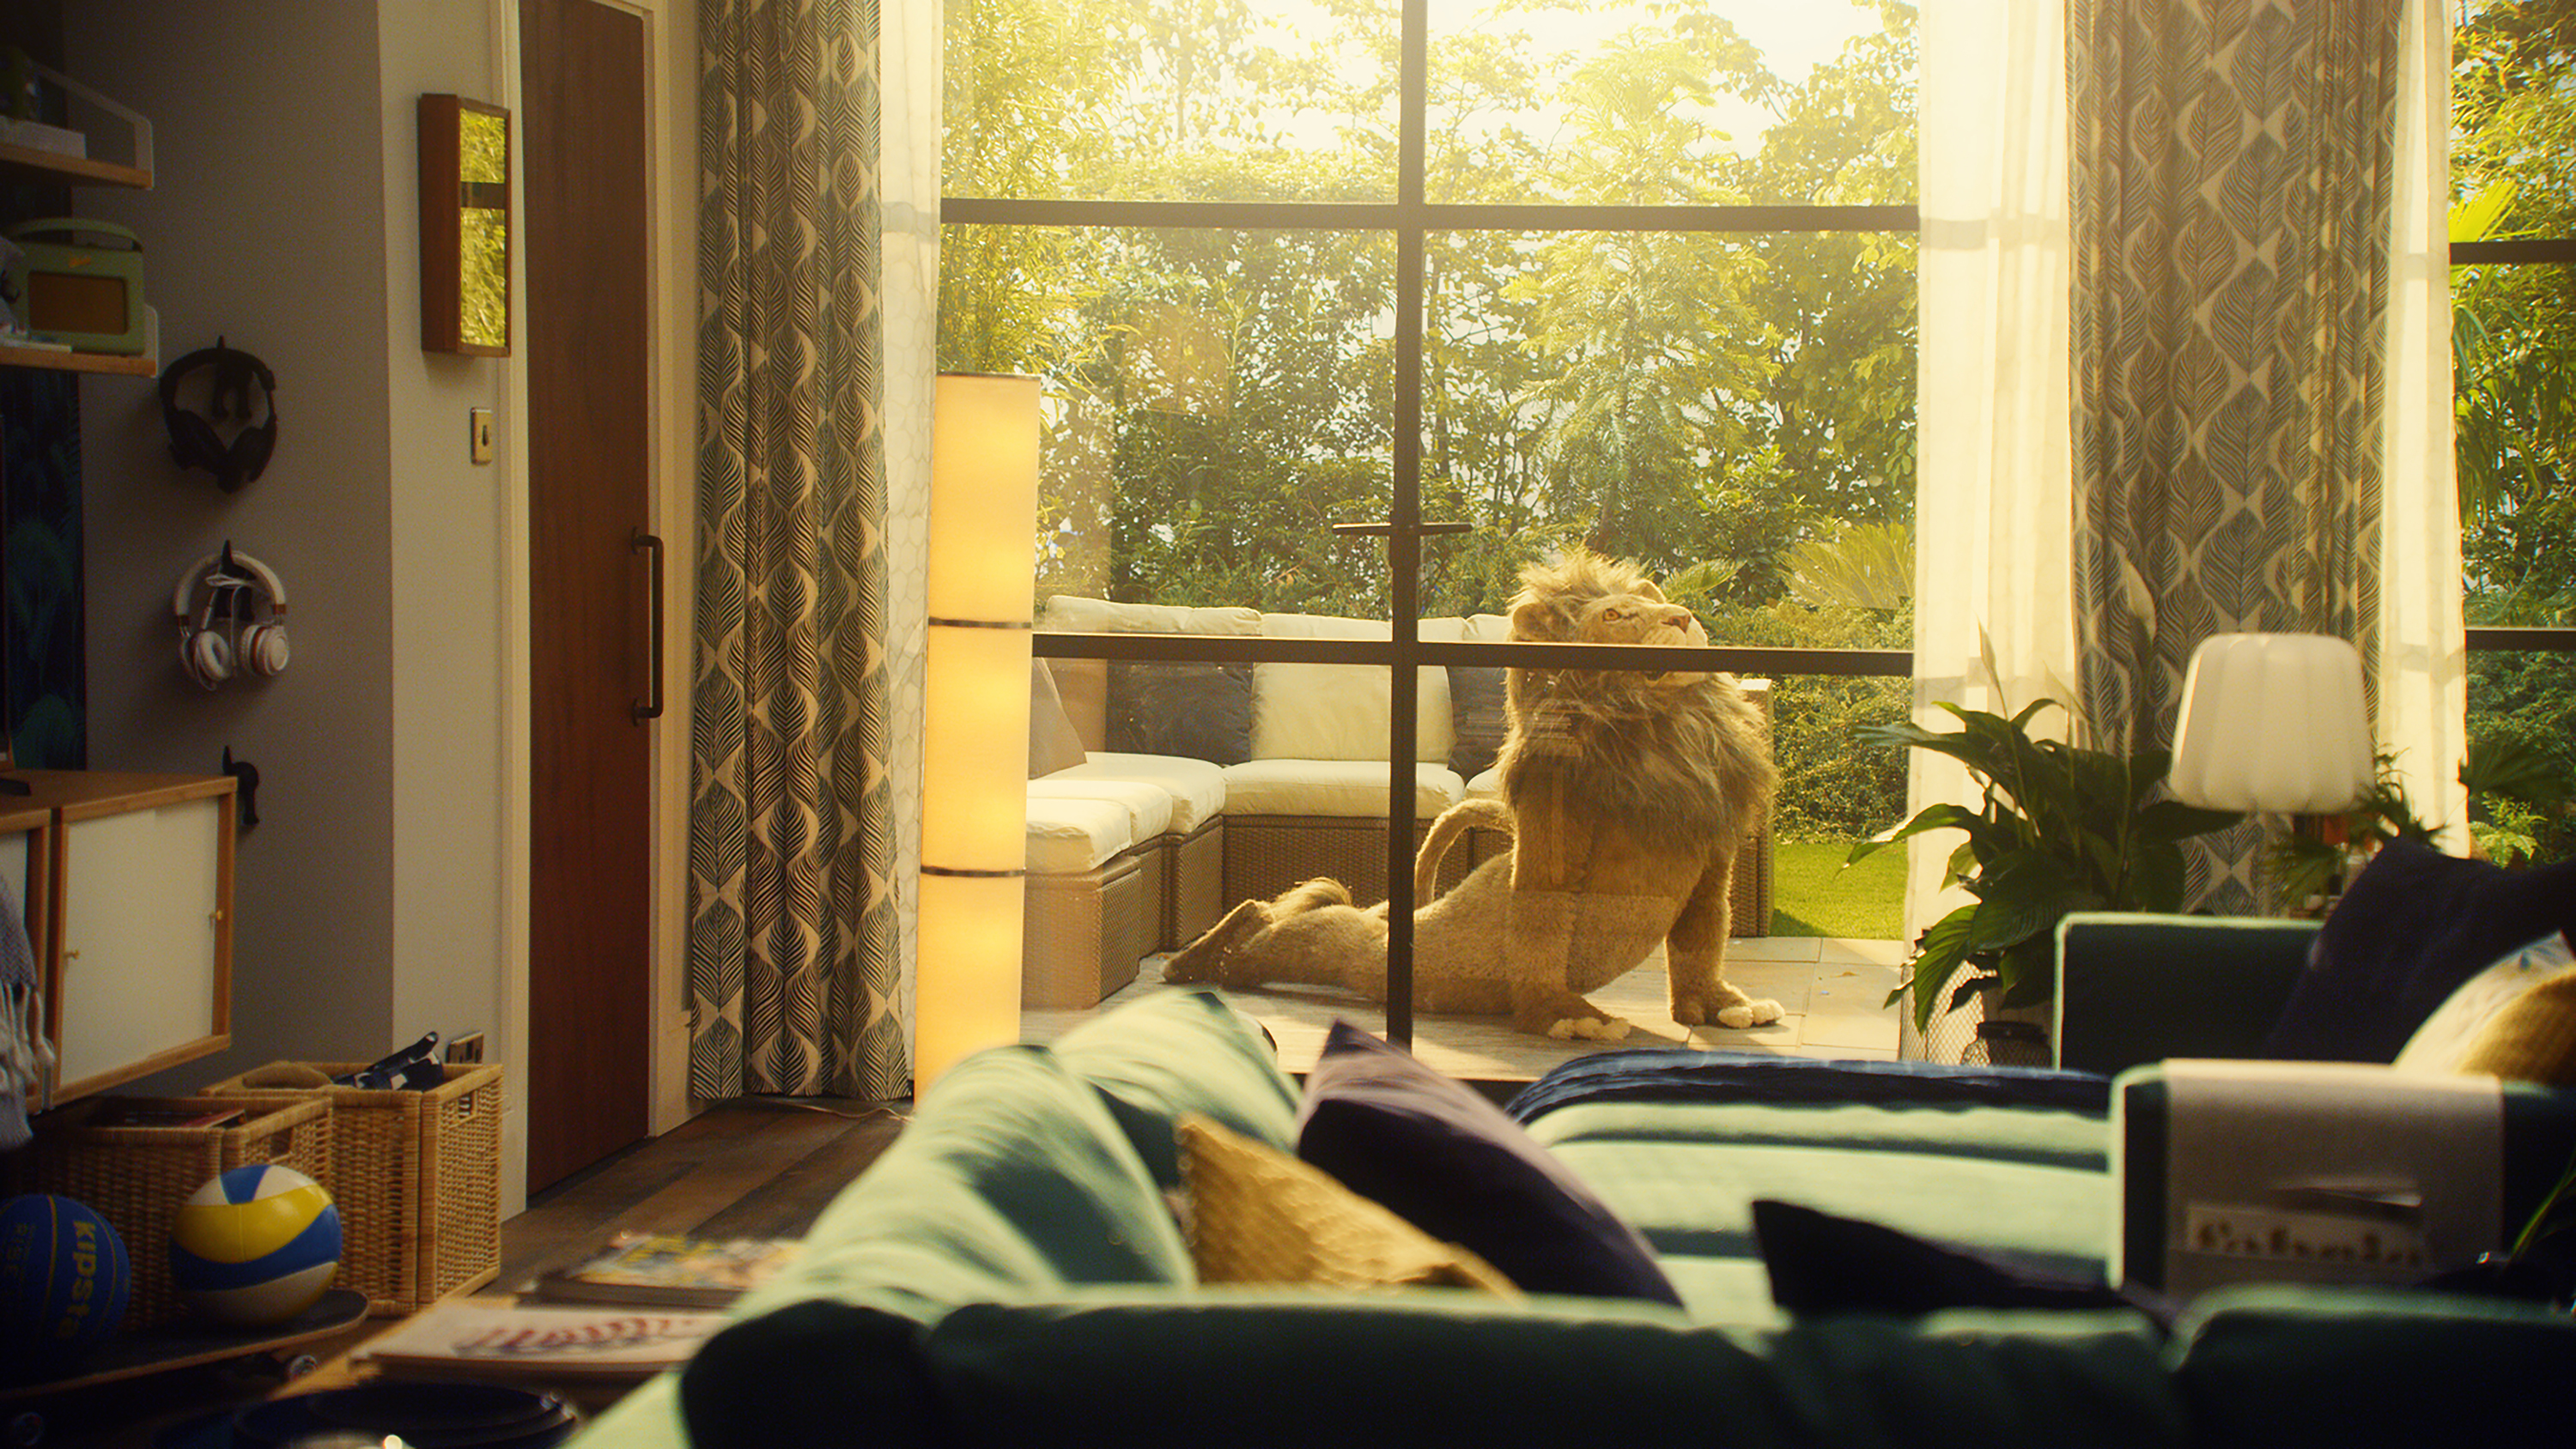 Ikea lion man relax into greatness blogs bloglikes for Ikea commercial 2017